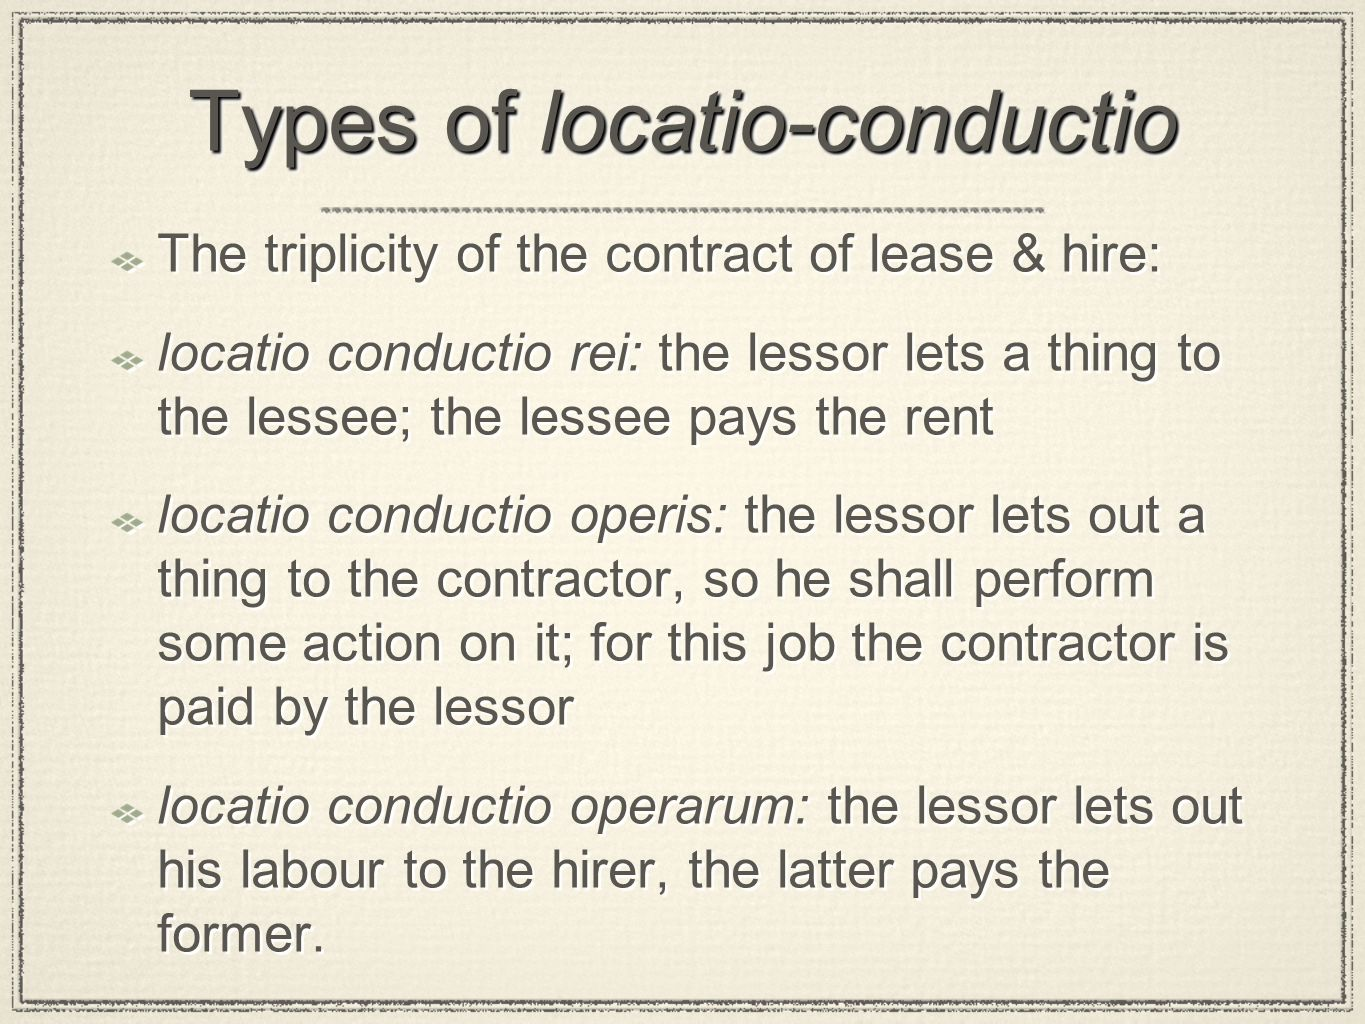 Types of locatio-conductio The triplicity of the contract of lease & hire: locatio conductio rei: the lessor lets a thing to the lessee; the lessee pays the rent locatio conductio operis: the lessor lets out a thing to the contractor, so he shall perform some action on it; for this job the contractor is paid by the lessor locatio conductio operarum: the lessor lets out his labour to the hirer, the latter pays the former.